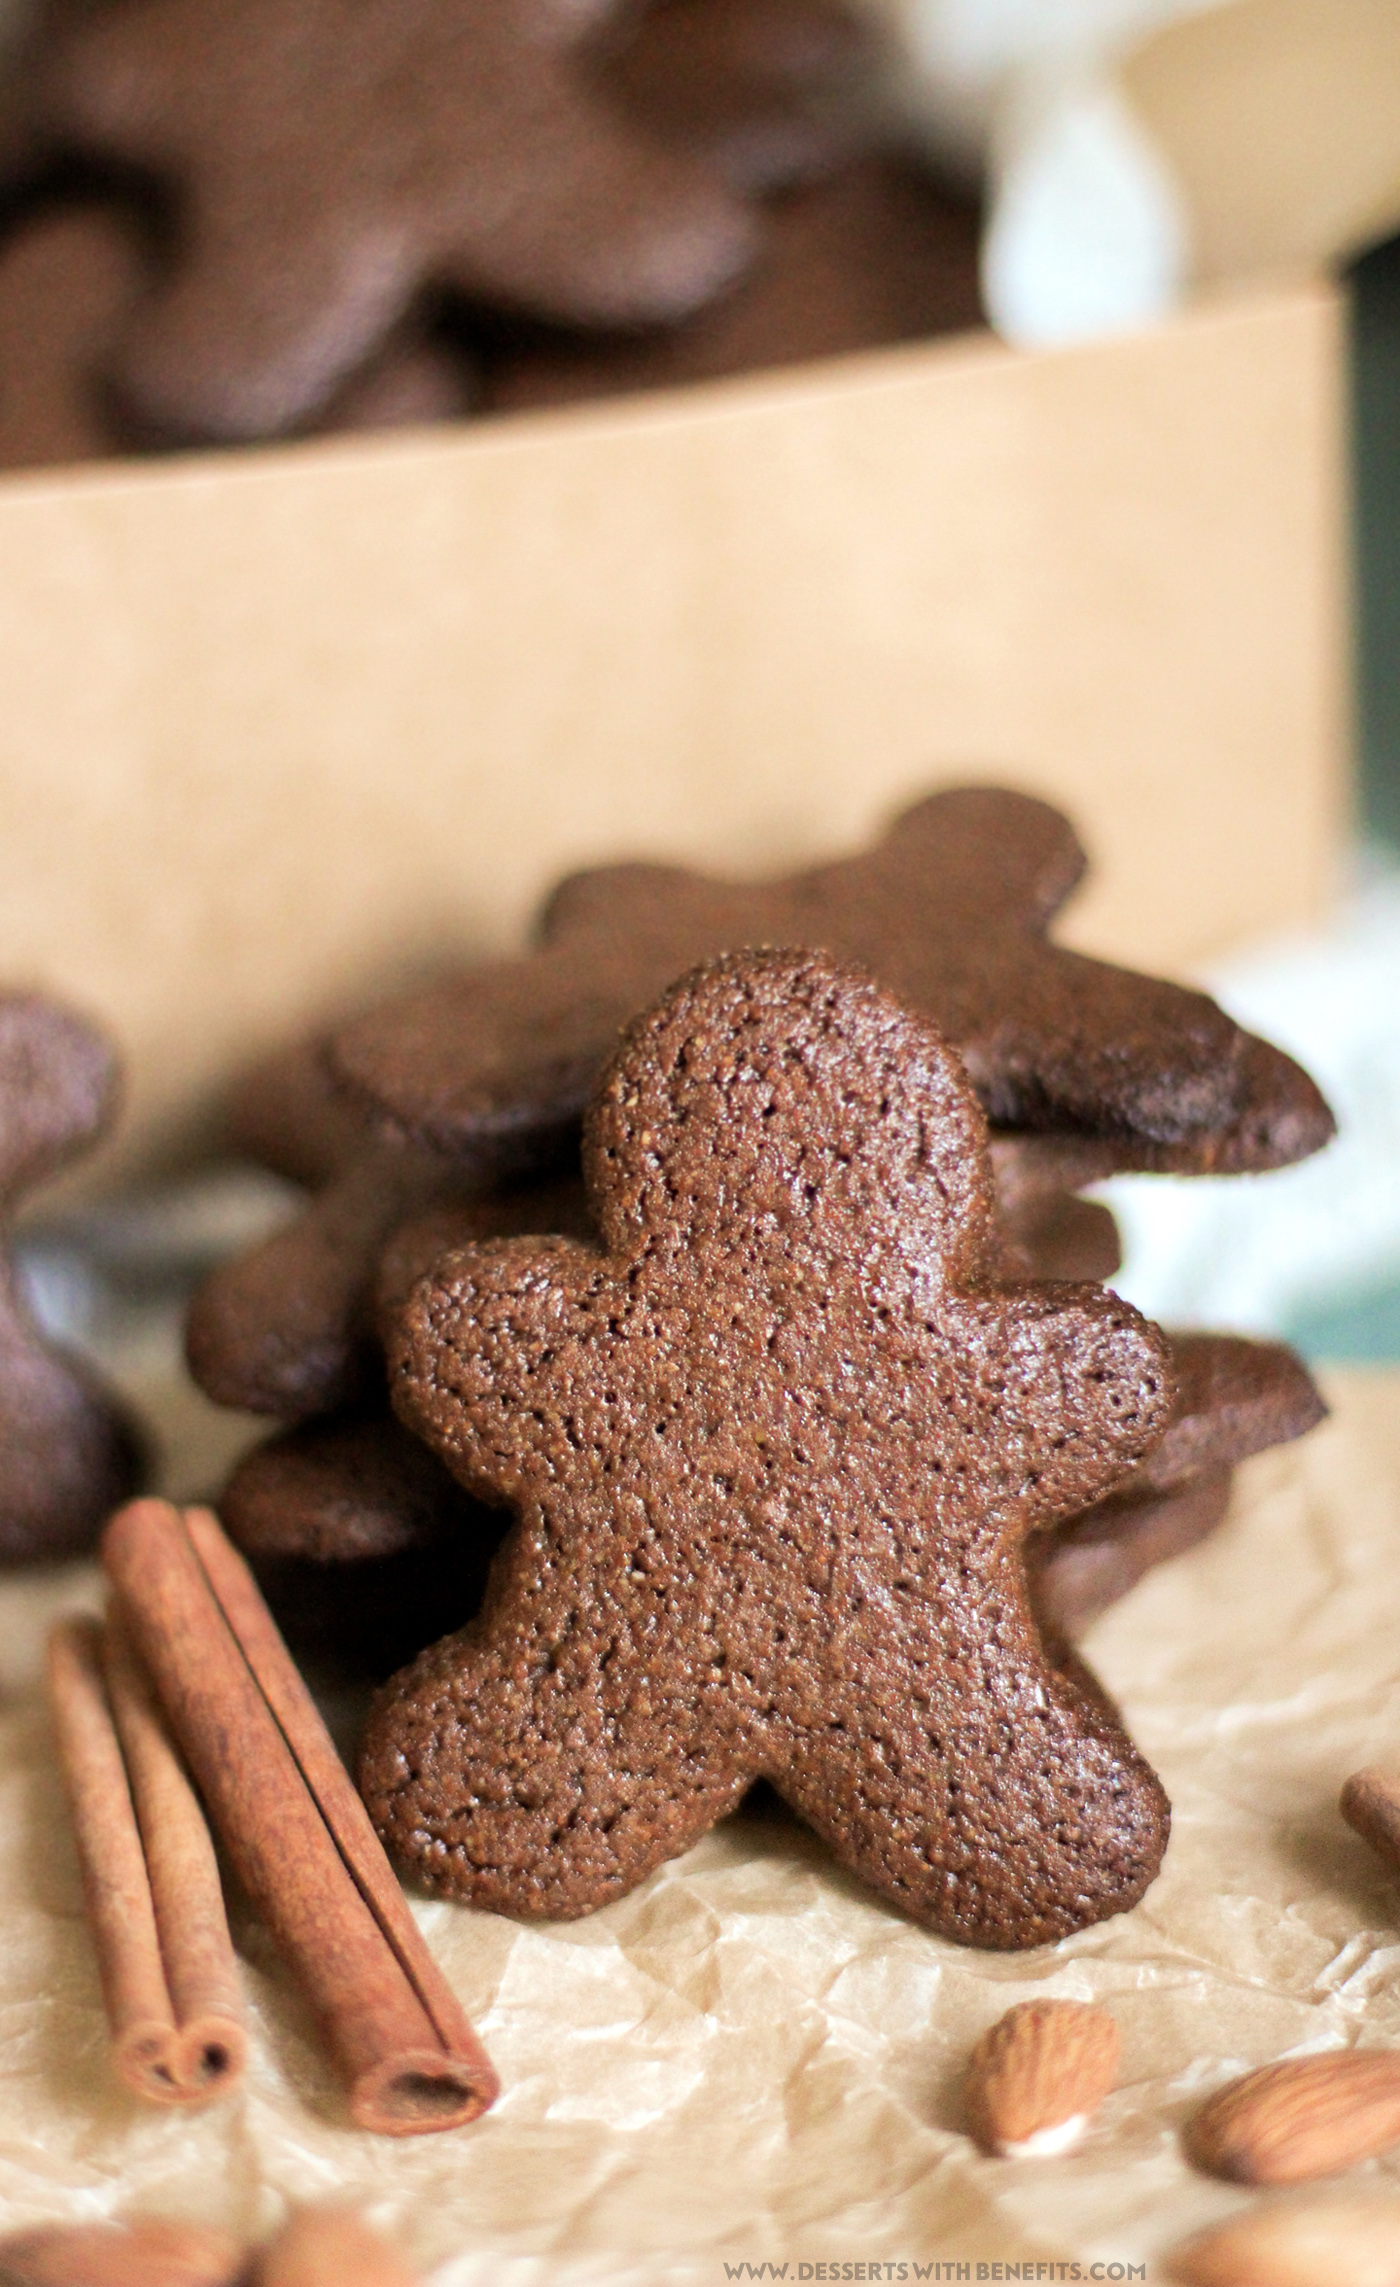 Healthy gingerbread man cookie recipes